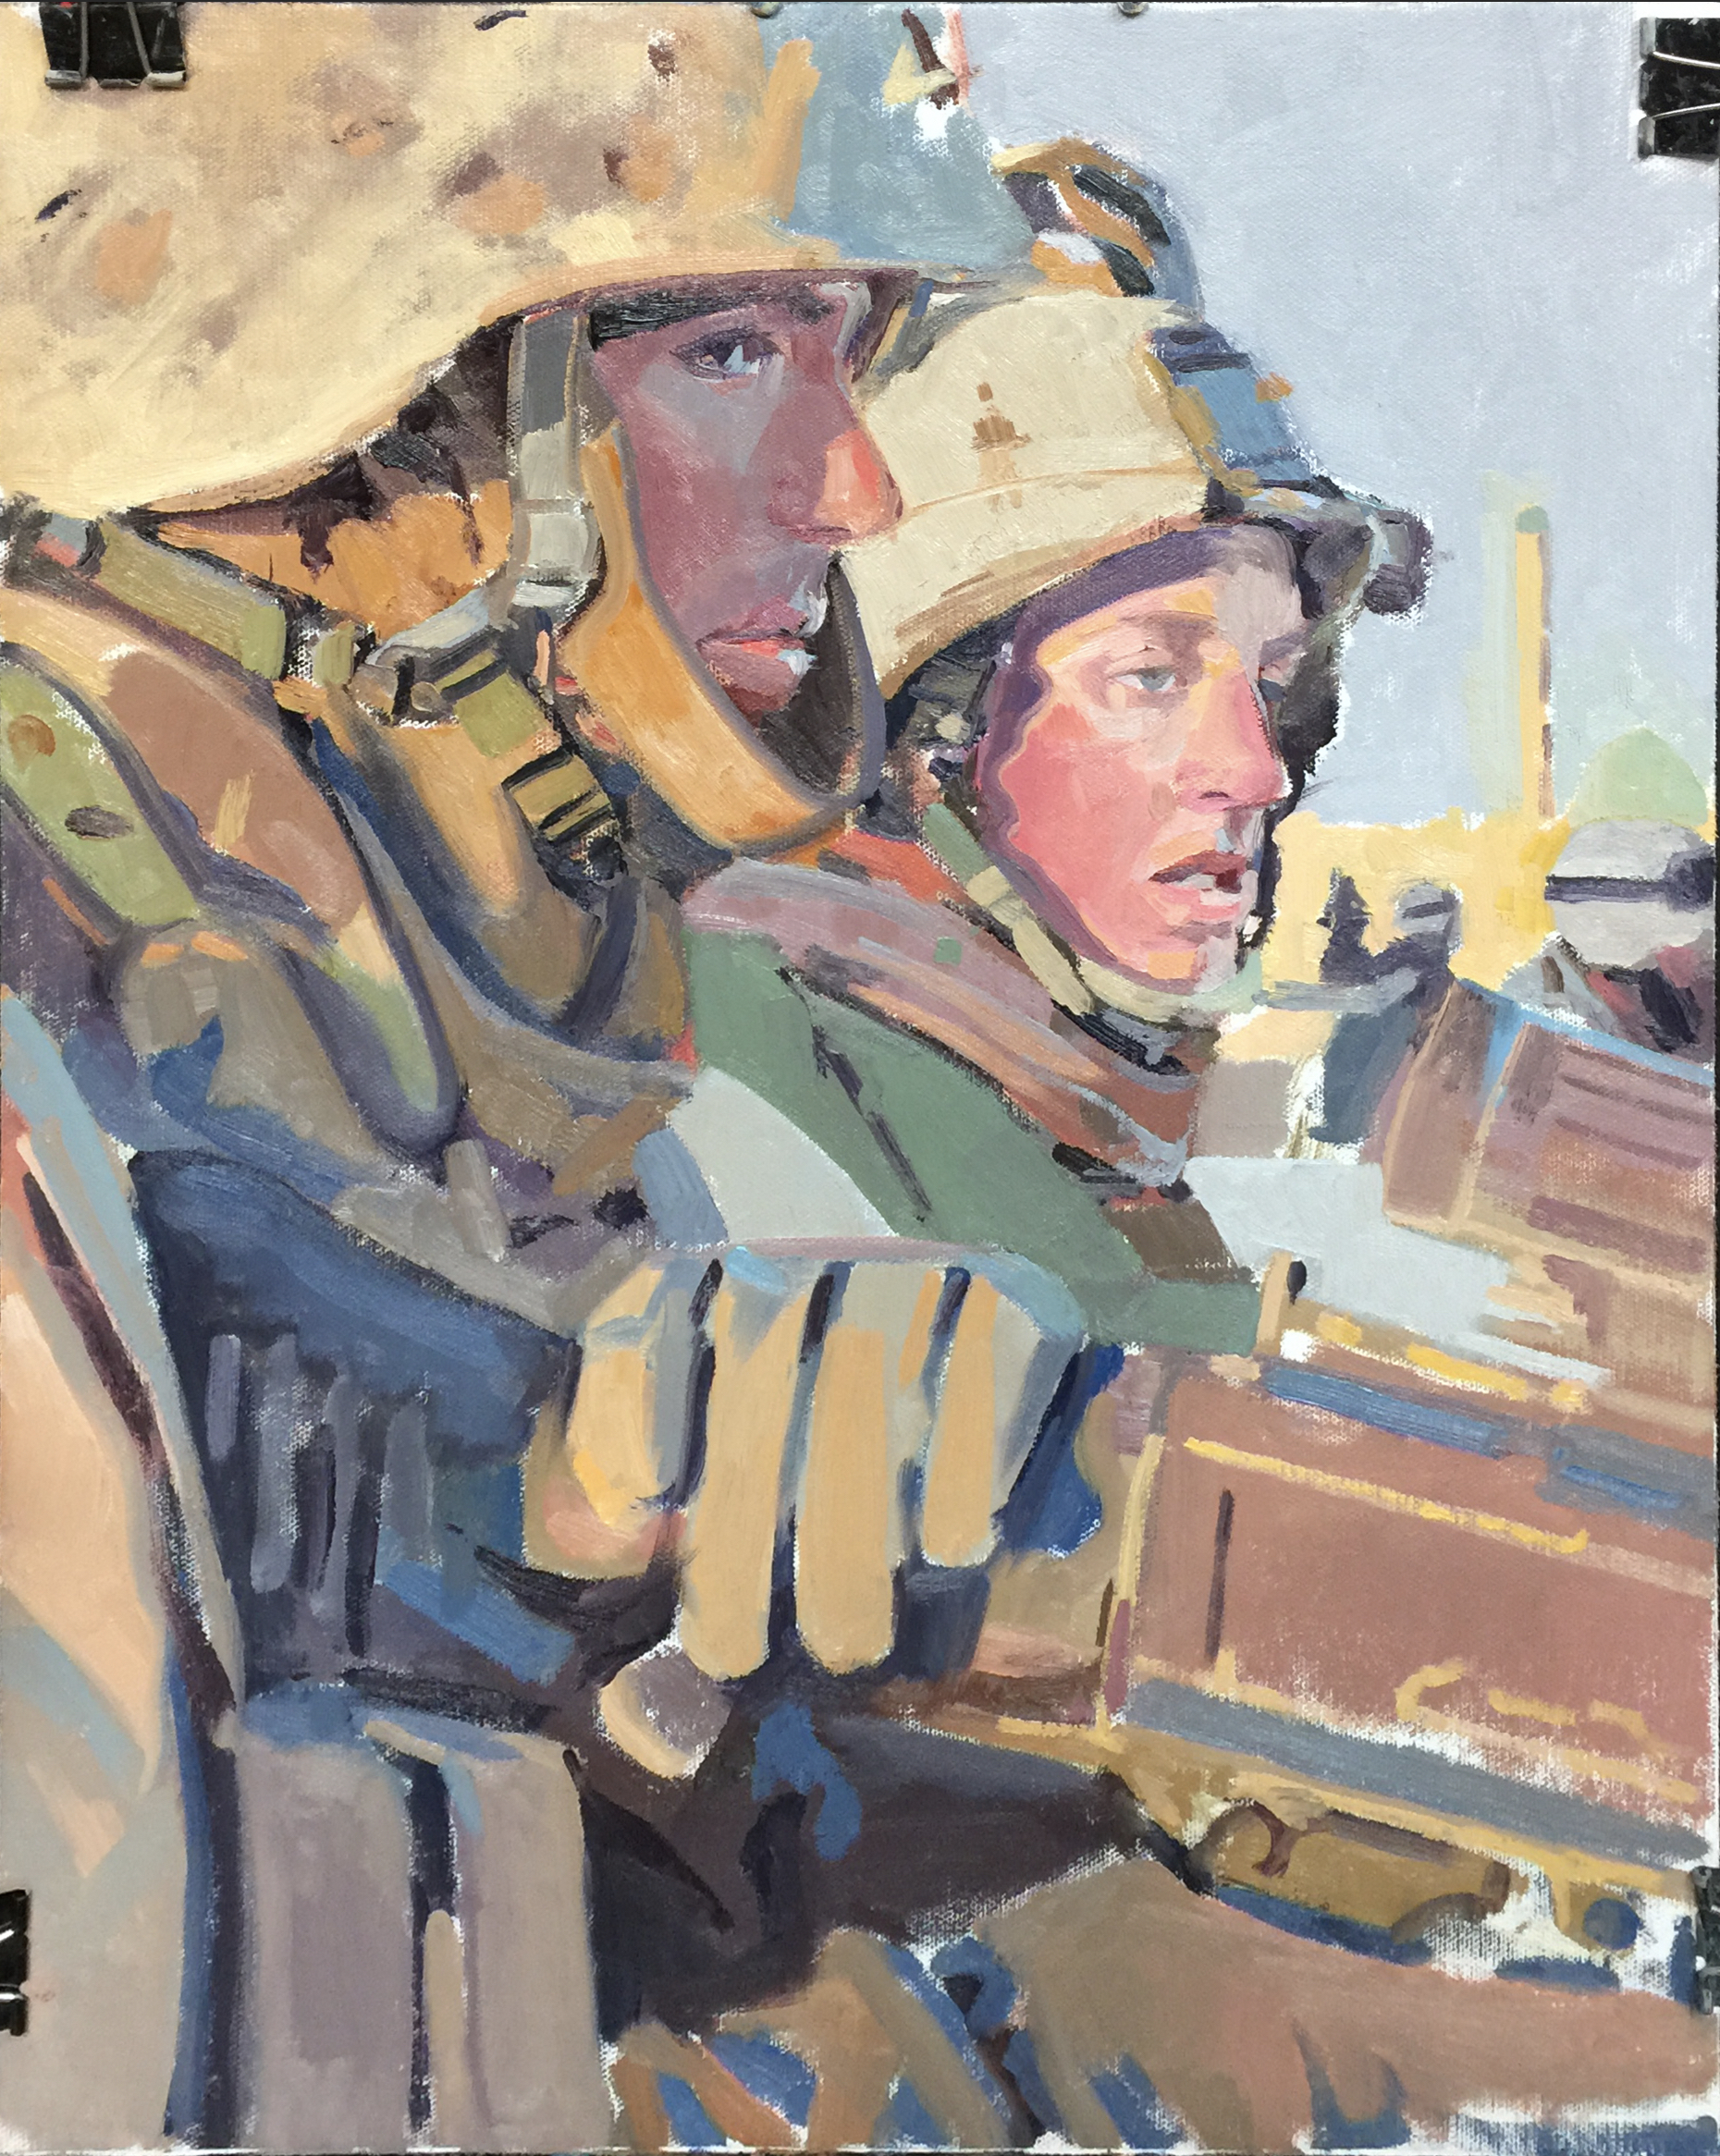 Leary and Deeds -- Painting by John Deckert from a photo by and courtesy of WO3 Michael D. Fay, USMC (ret)